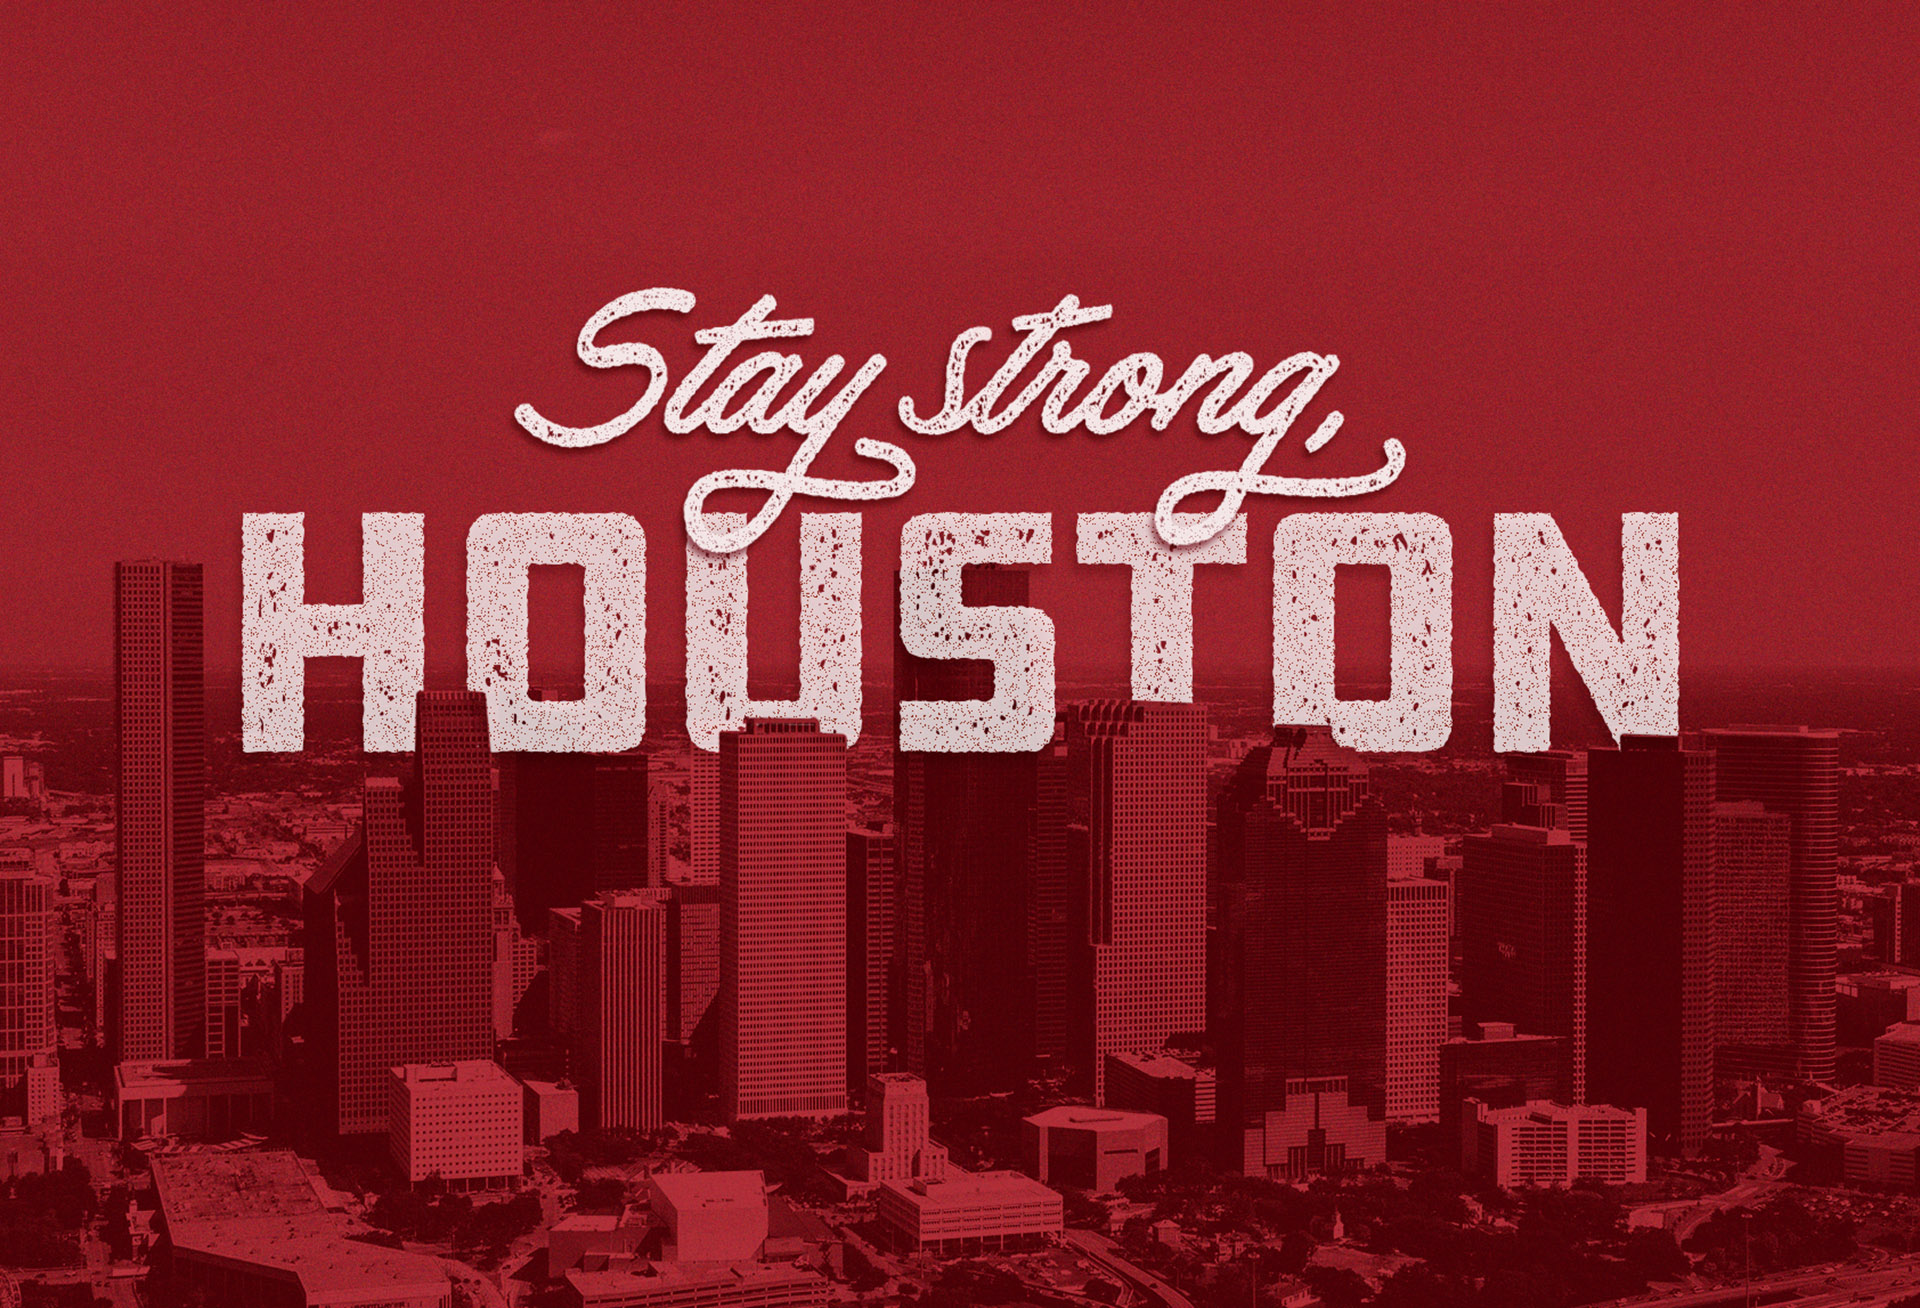 sam broom stay strong houston texas hurricane harvey disaster relief graphic design